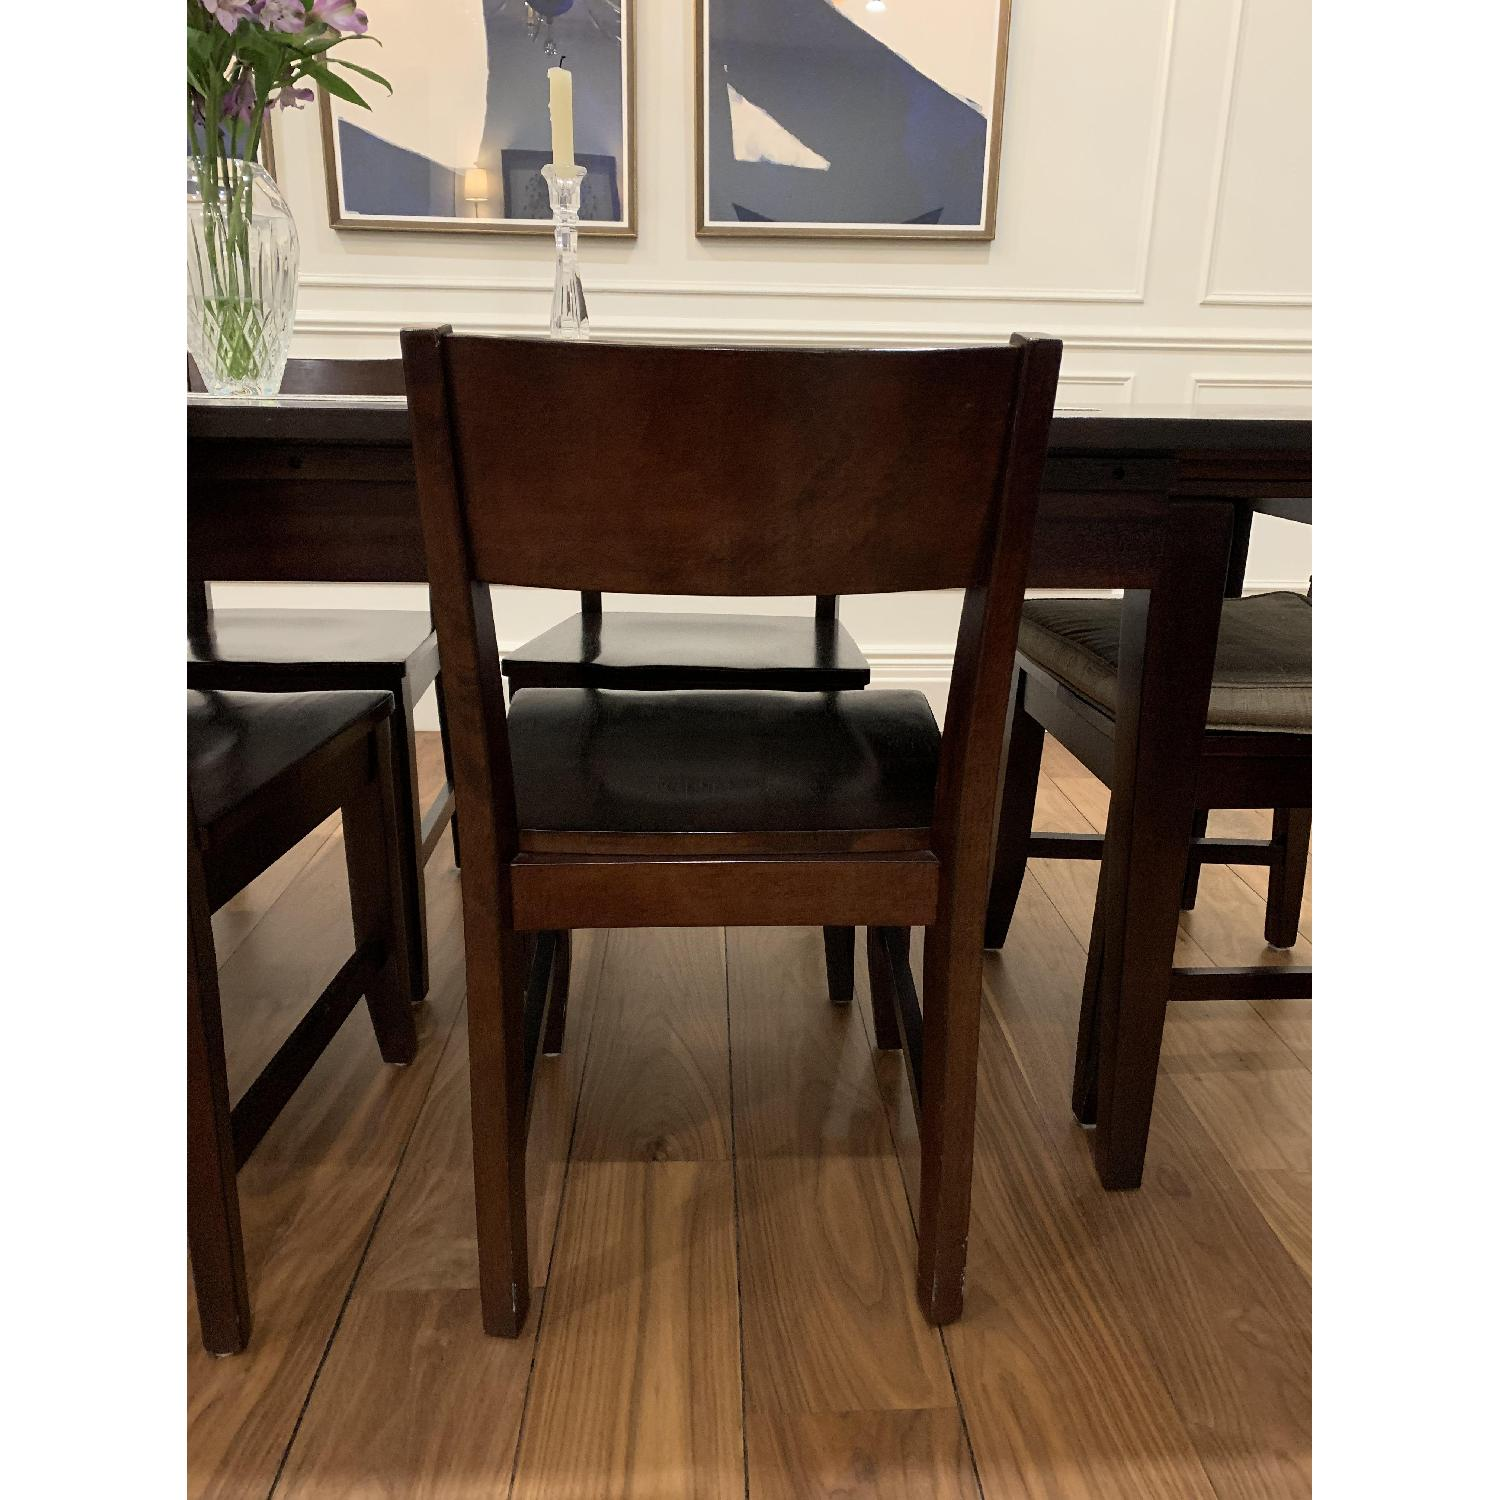 Montreal Espresso Wood Chairs - image-11